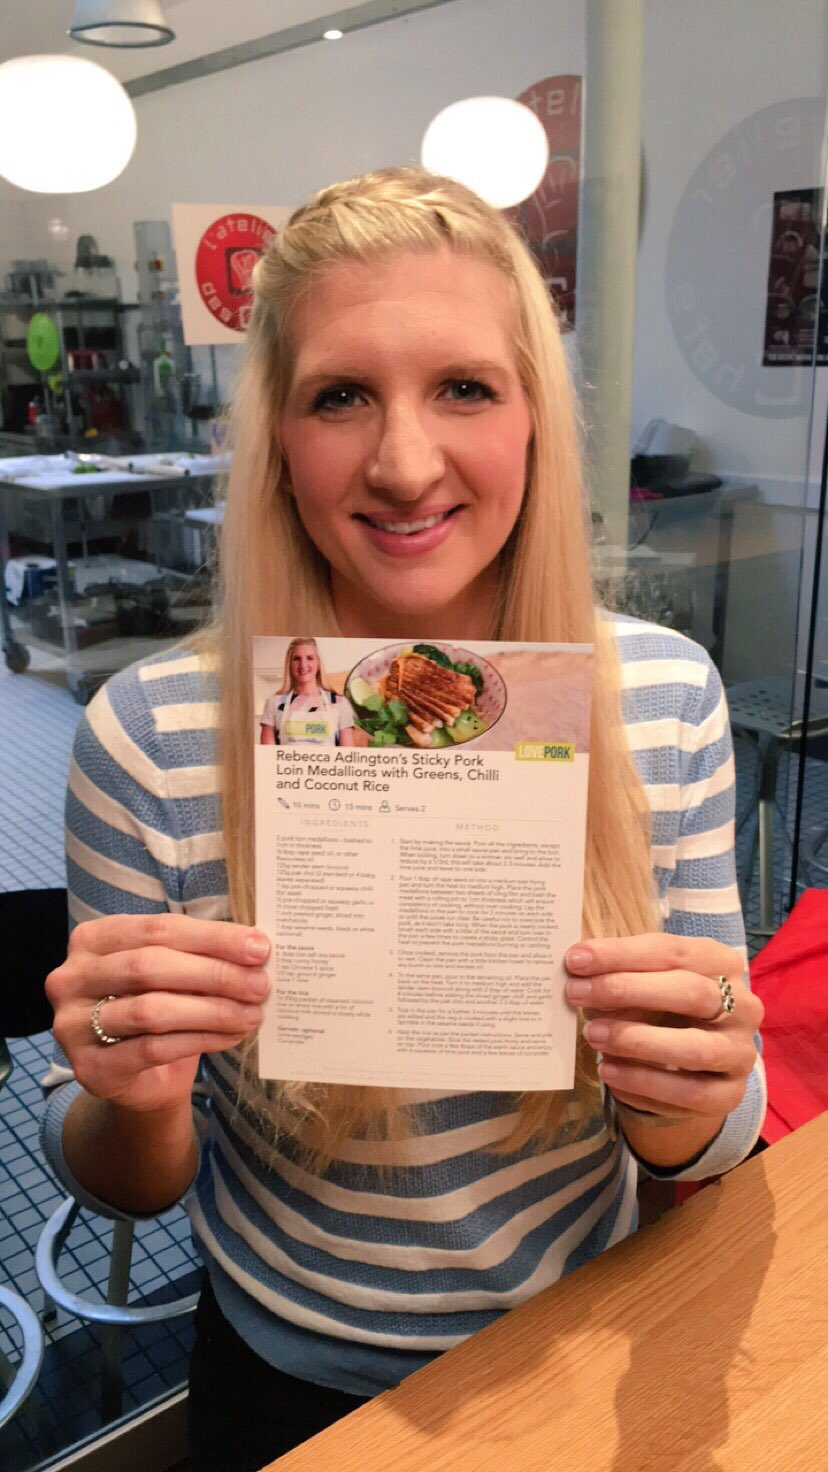 In love with my own recipe cards @LovePork #Food #PickPork #HealthyEating https://t.co/JBQjnhhD14